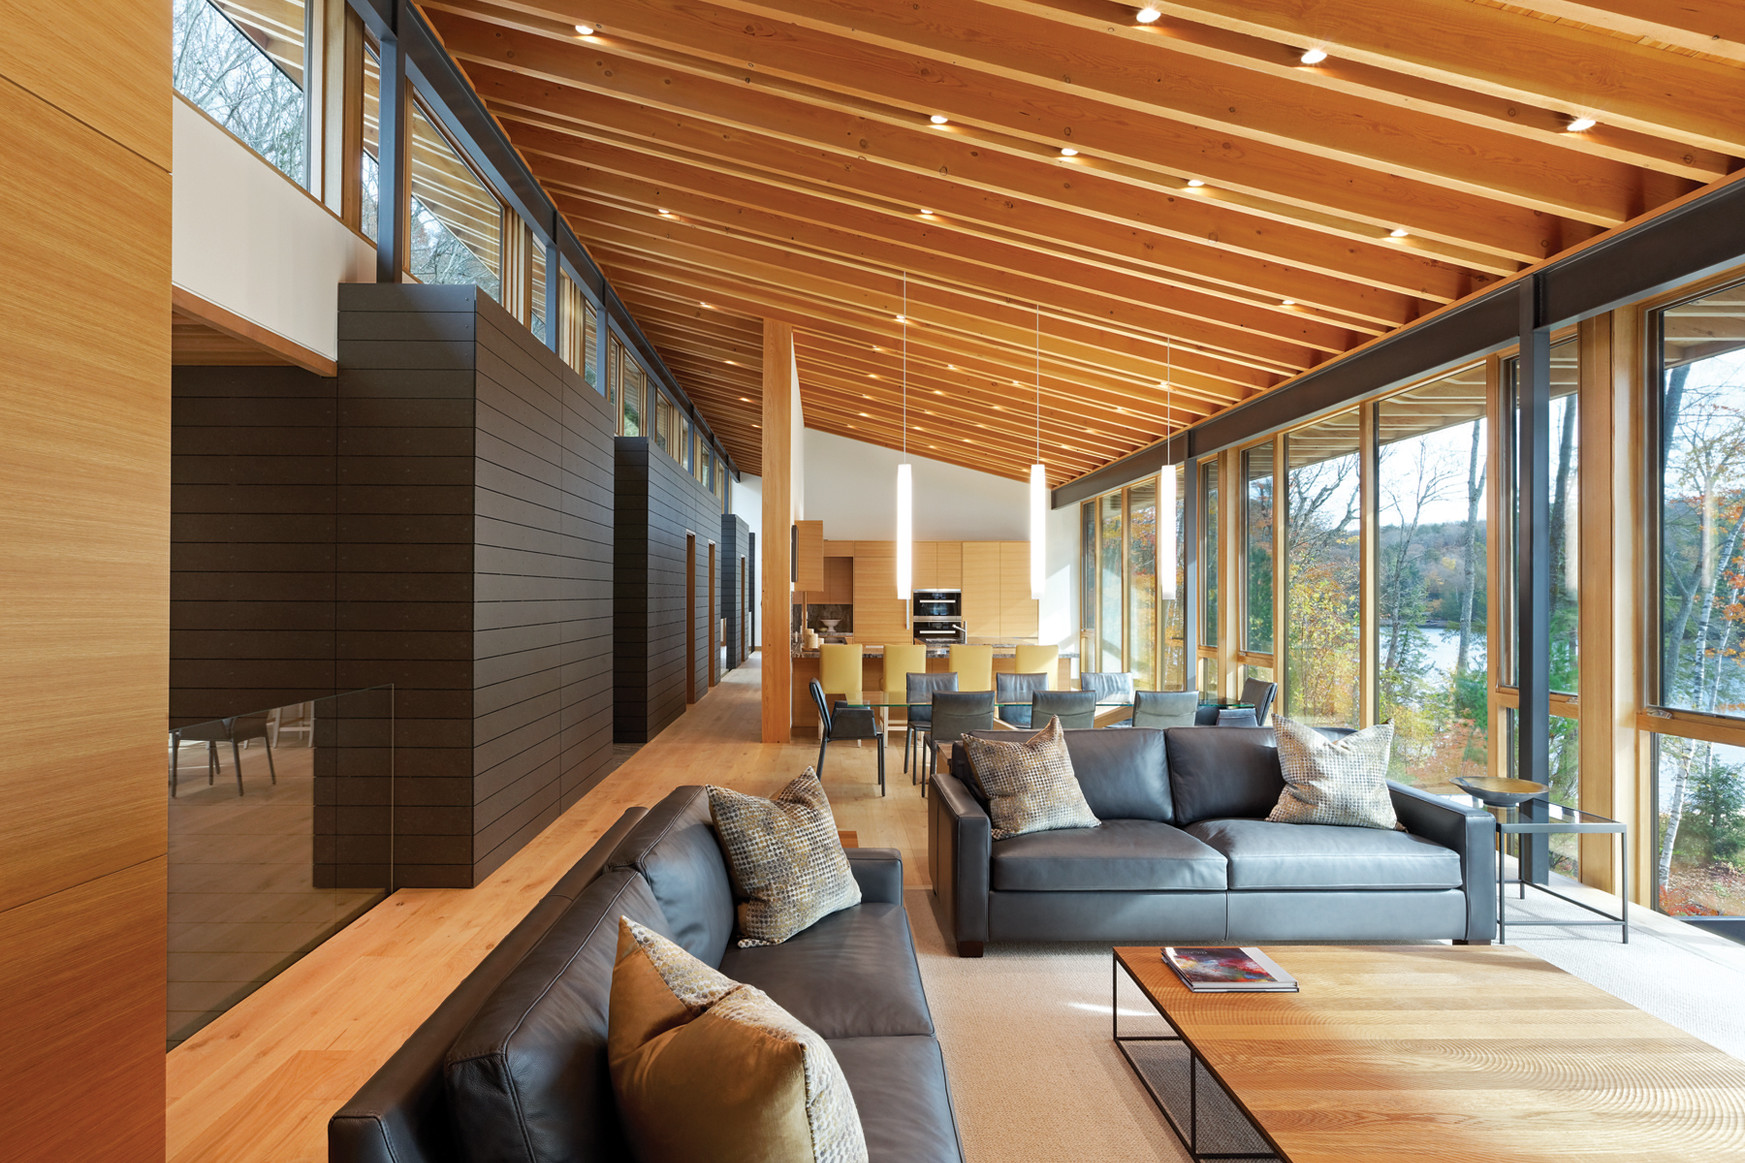 Open concept living room, dining area and kitchen with slanted rafter ceiling with clerestory windows and glazed wall with views of lake and trees